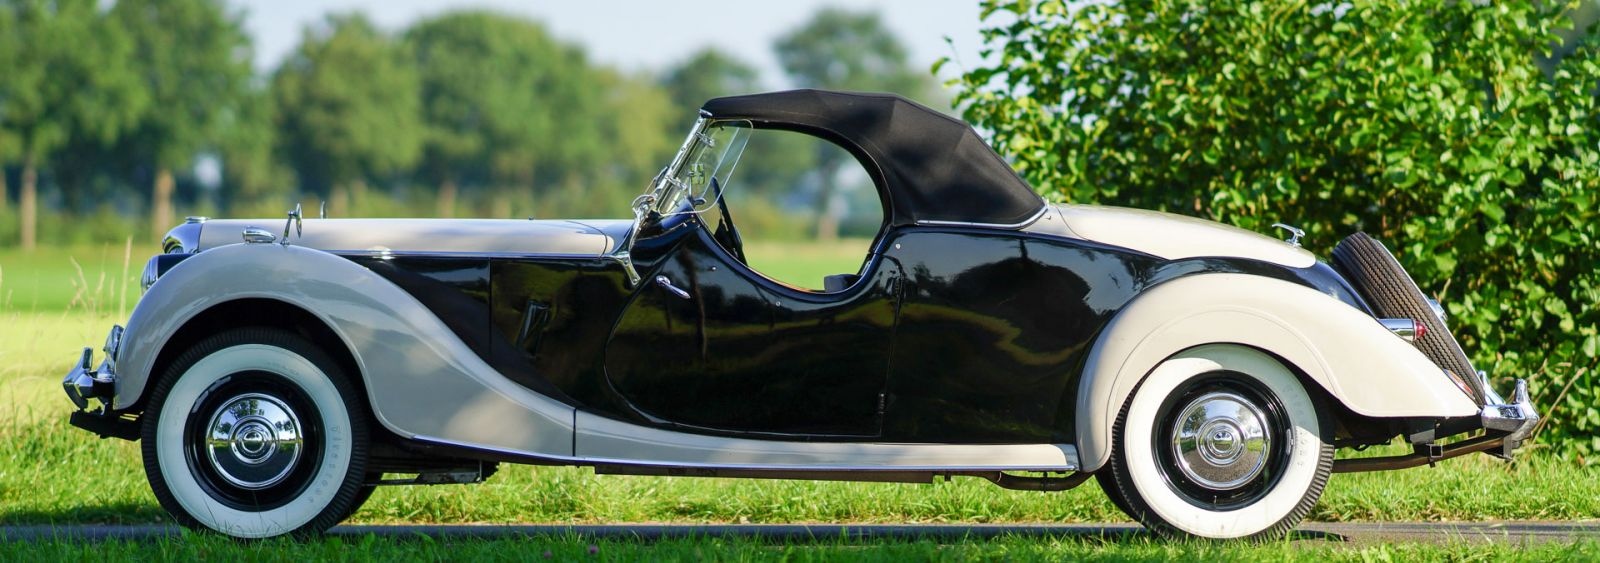 riley rmc roadster 1950 welcome to classicargarage. Black Bedroom Furniture Sets. Home Design Ideas